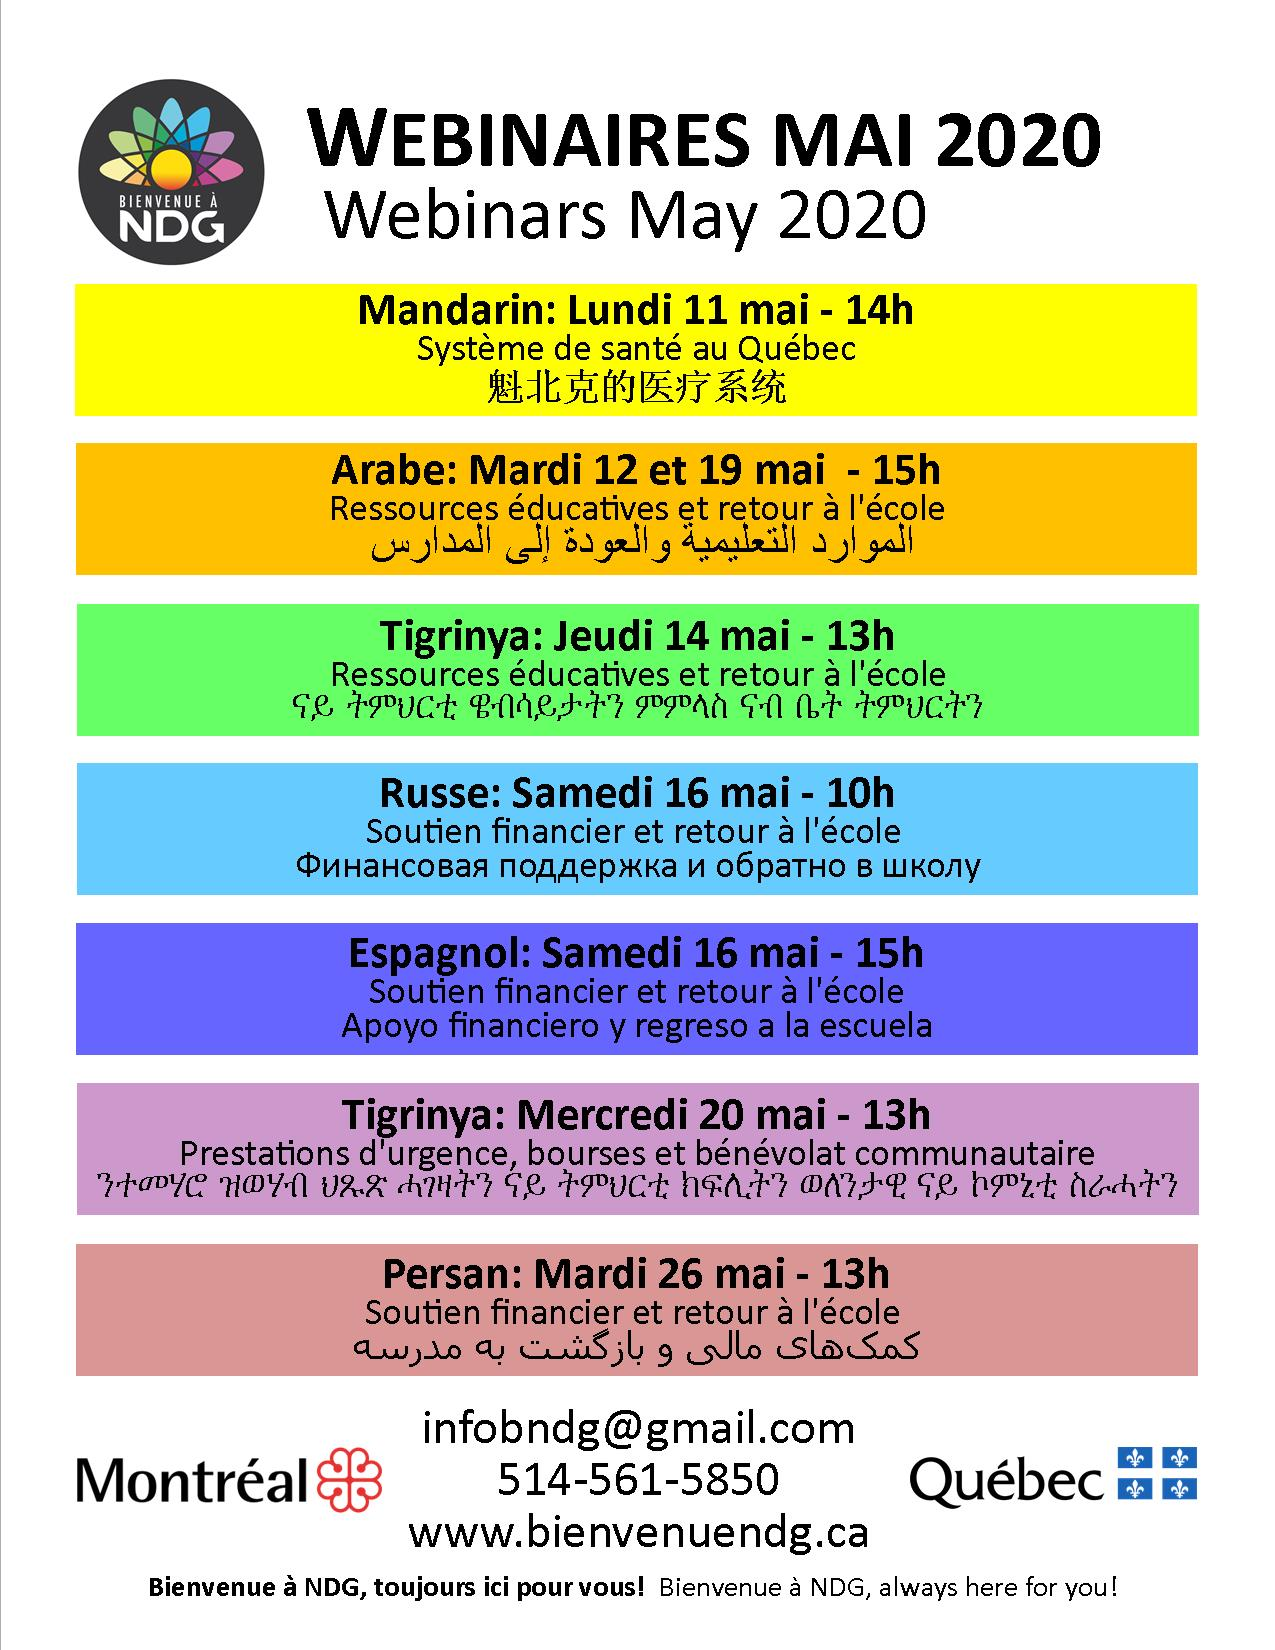 BNDG: multilingual webinars May 2020